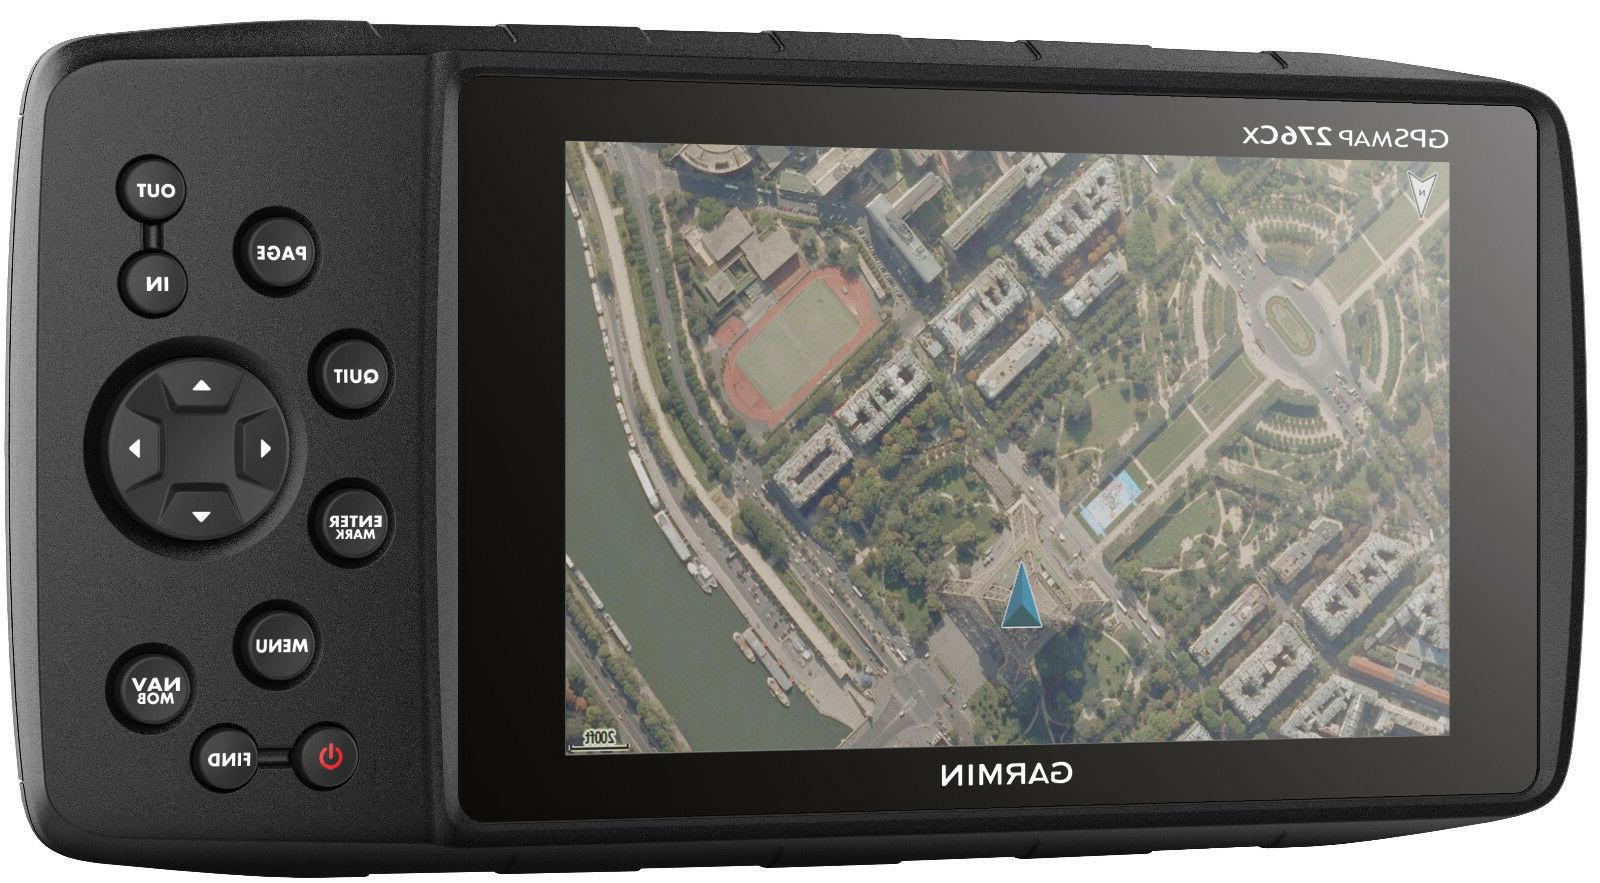 NWB Garmin All-terrain Navigator Advanced Mapping